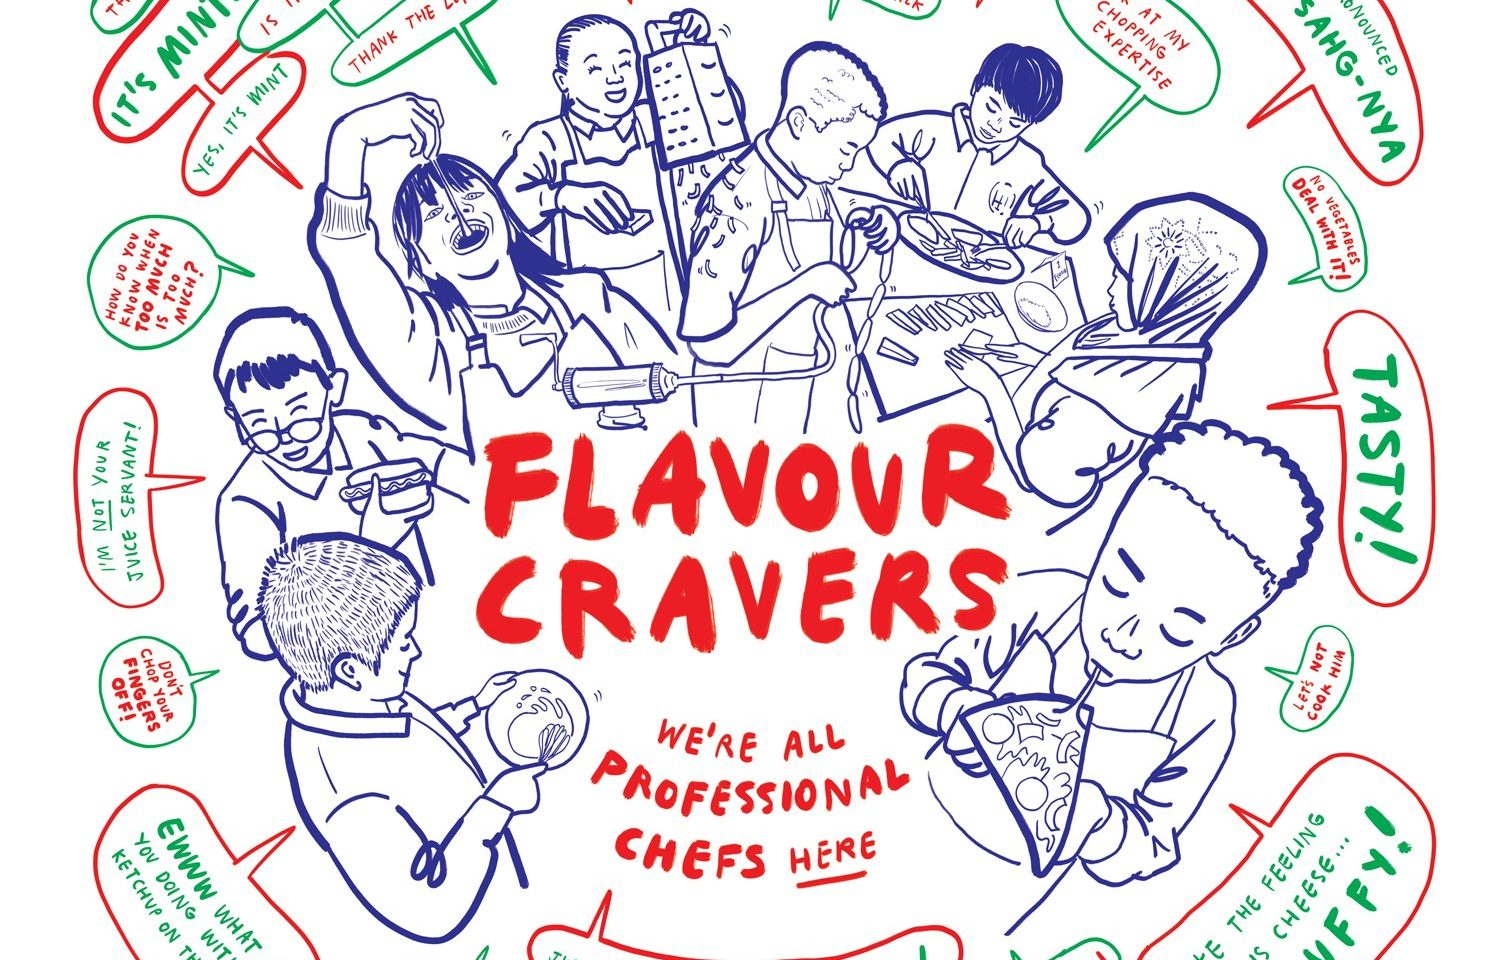 An illustration of the children from the Big Family Press and Flavour Cravers project, eating food, with speech bubbles sharing quotes from the sessions